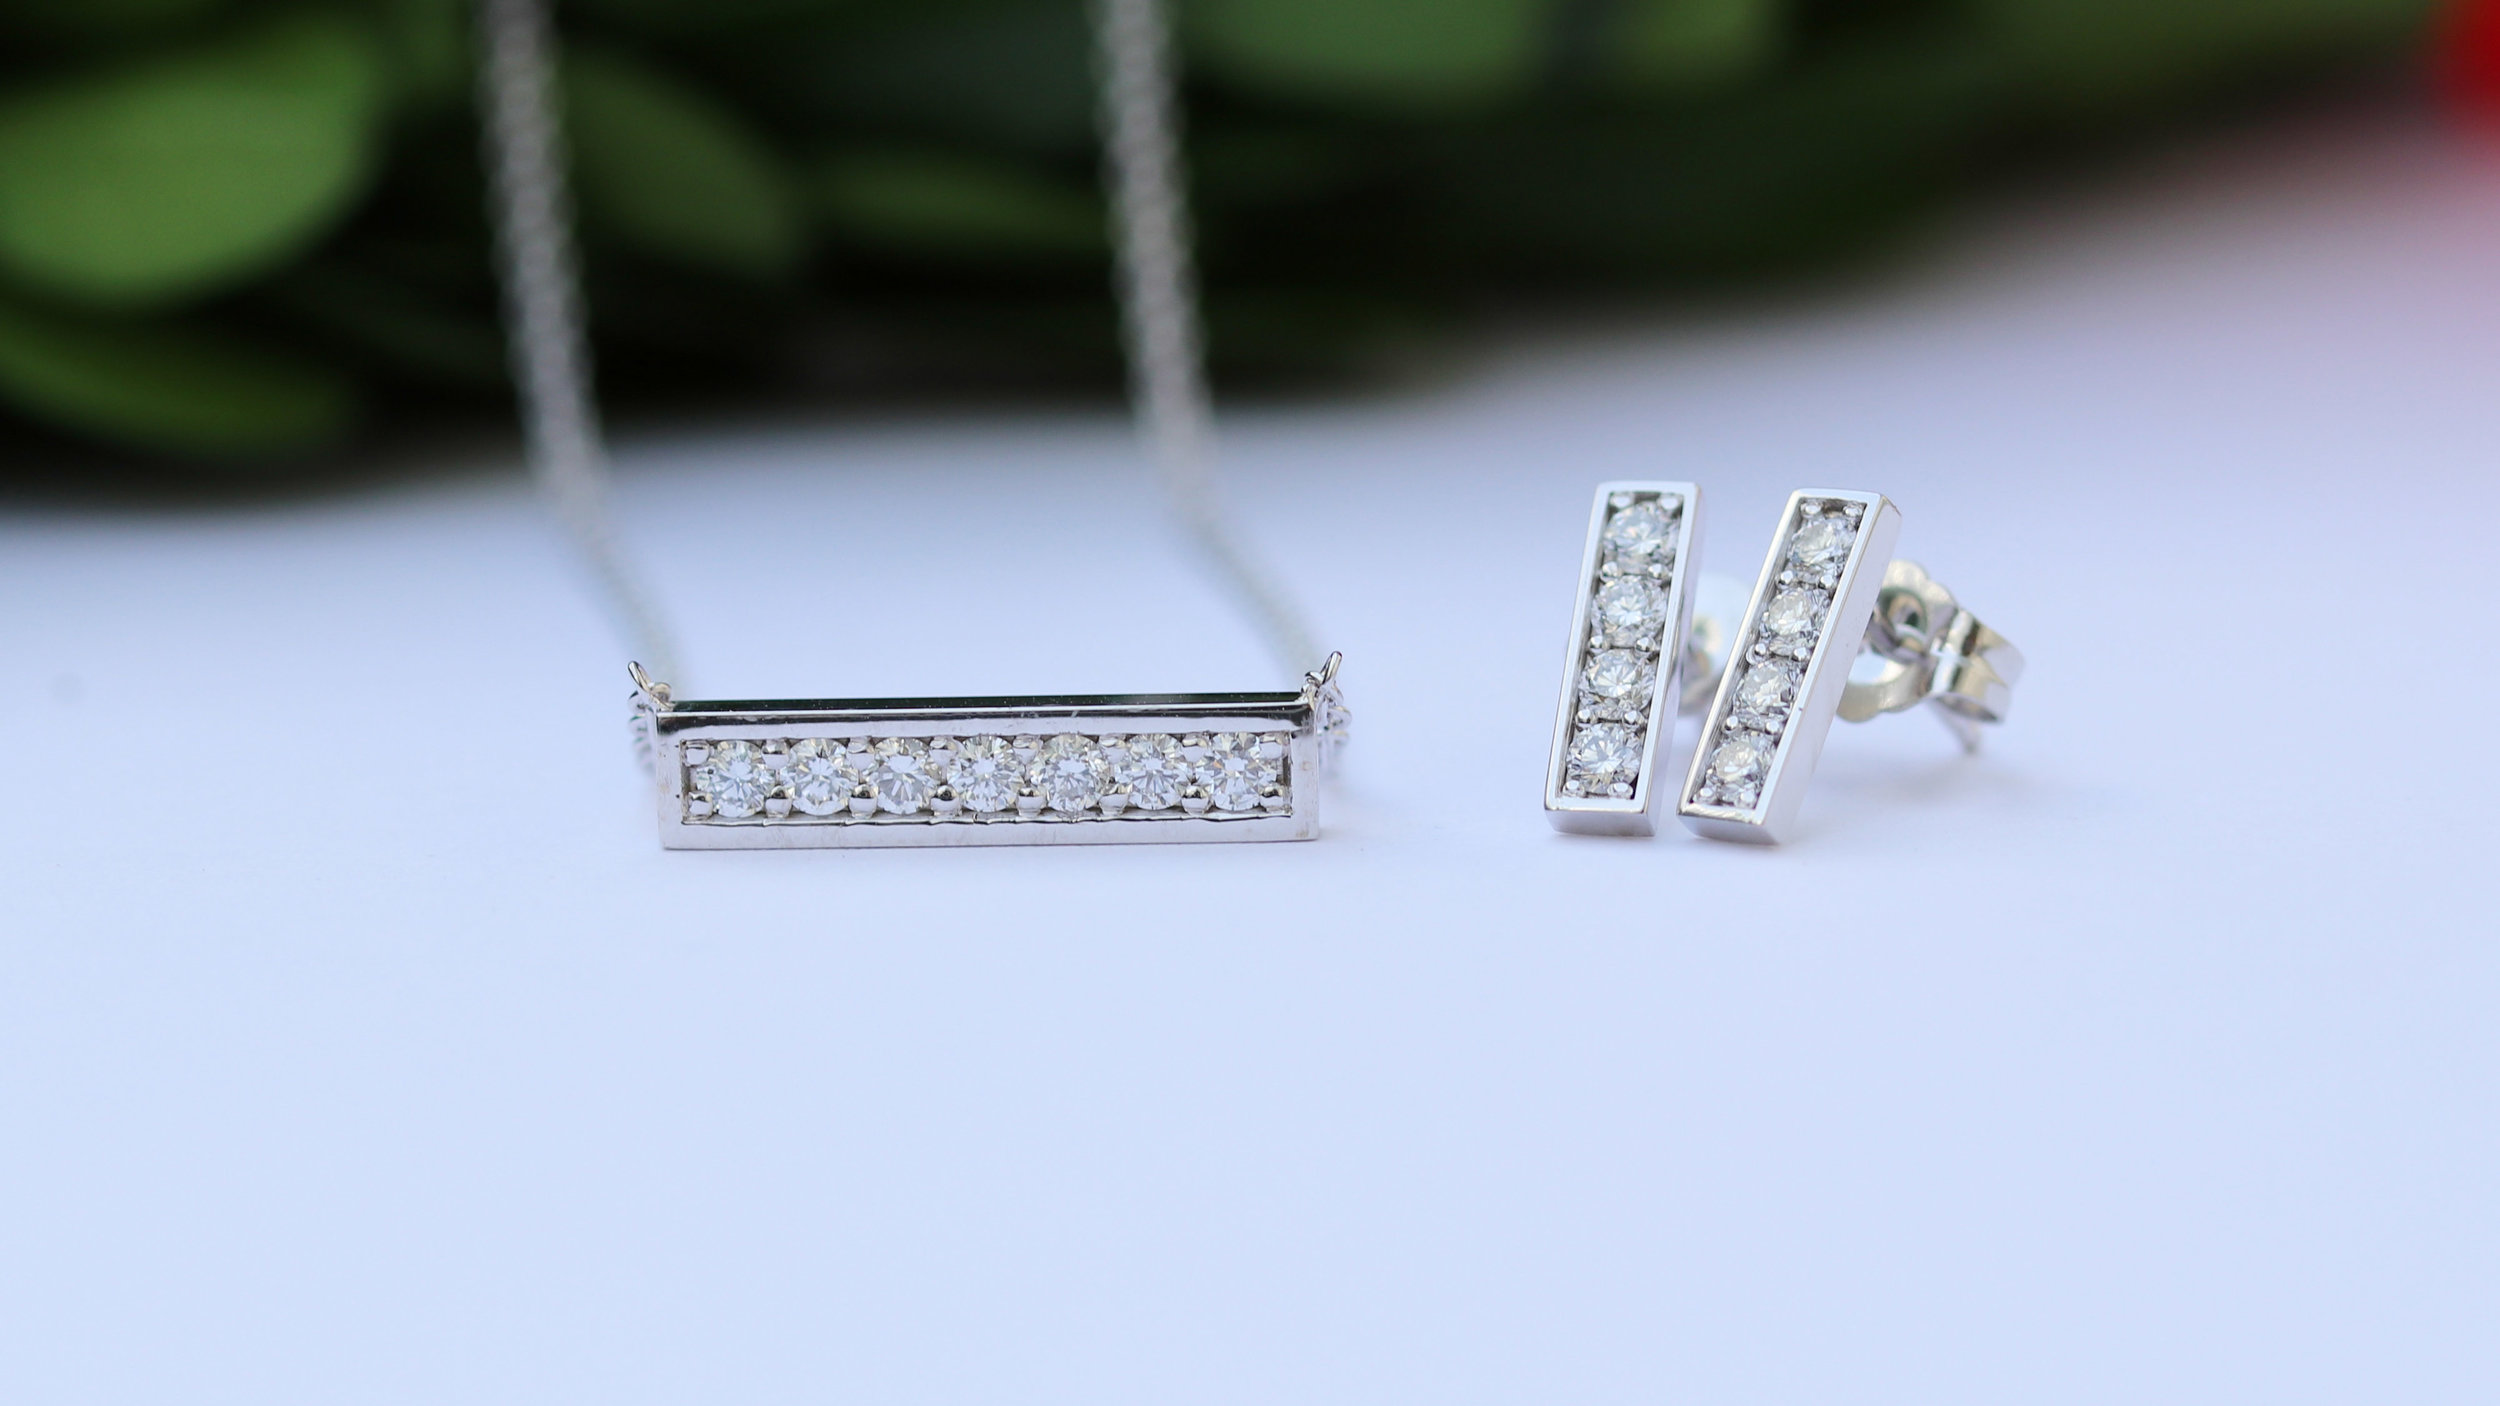 lab diamond pendant necklace and lab diamond drop earrings in white gold ada diamonds new york